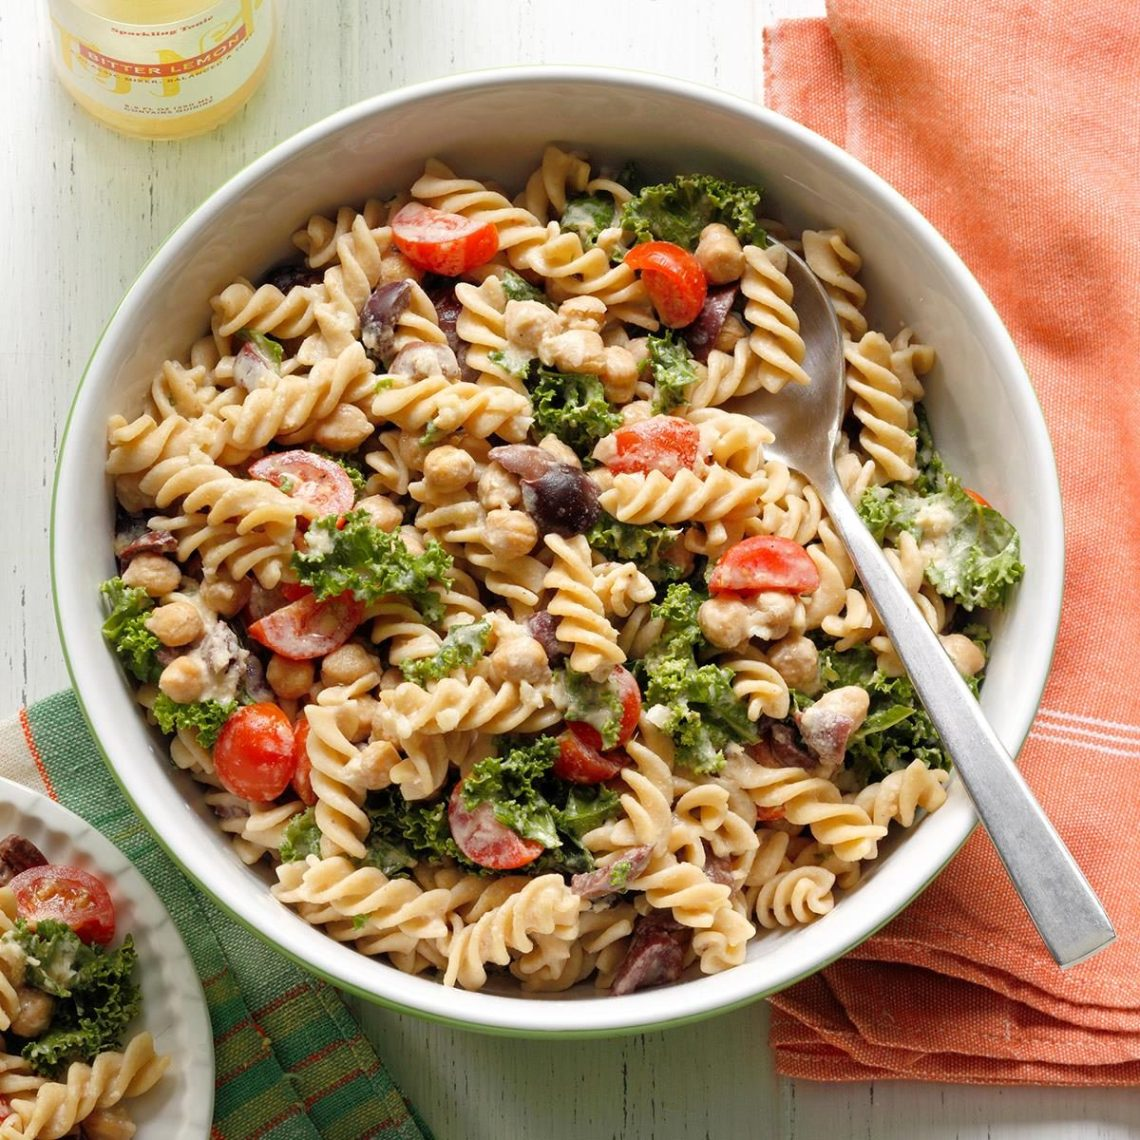 Download 20 Healthy Pasta Salad Recipes You'll Love to Make this ...